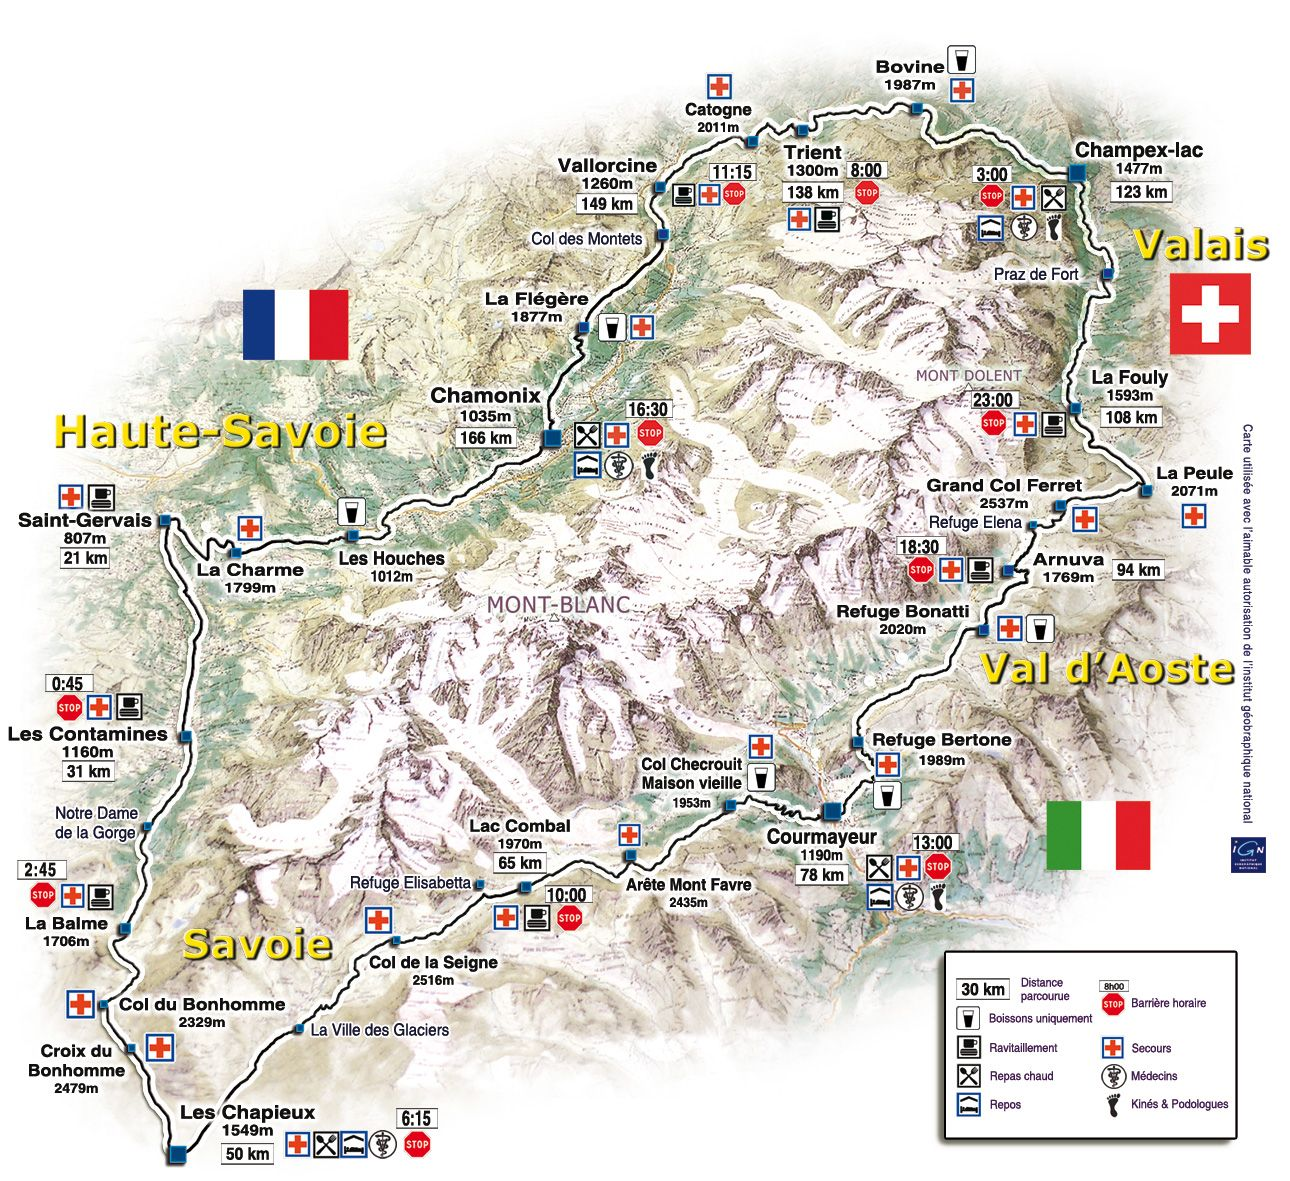 carte tour du mont blanc Carte du TMB (With images) | Mont blanc, Mont blanc map, Ski trip